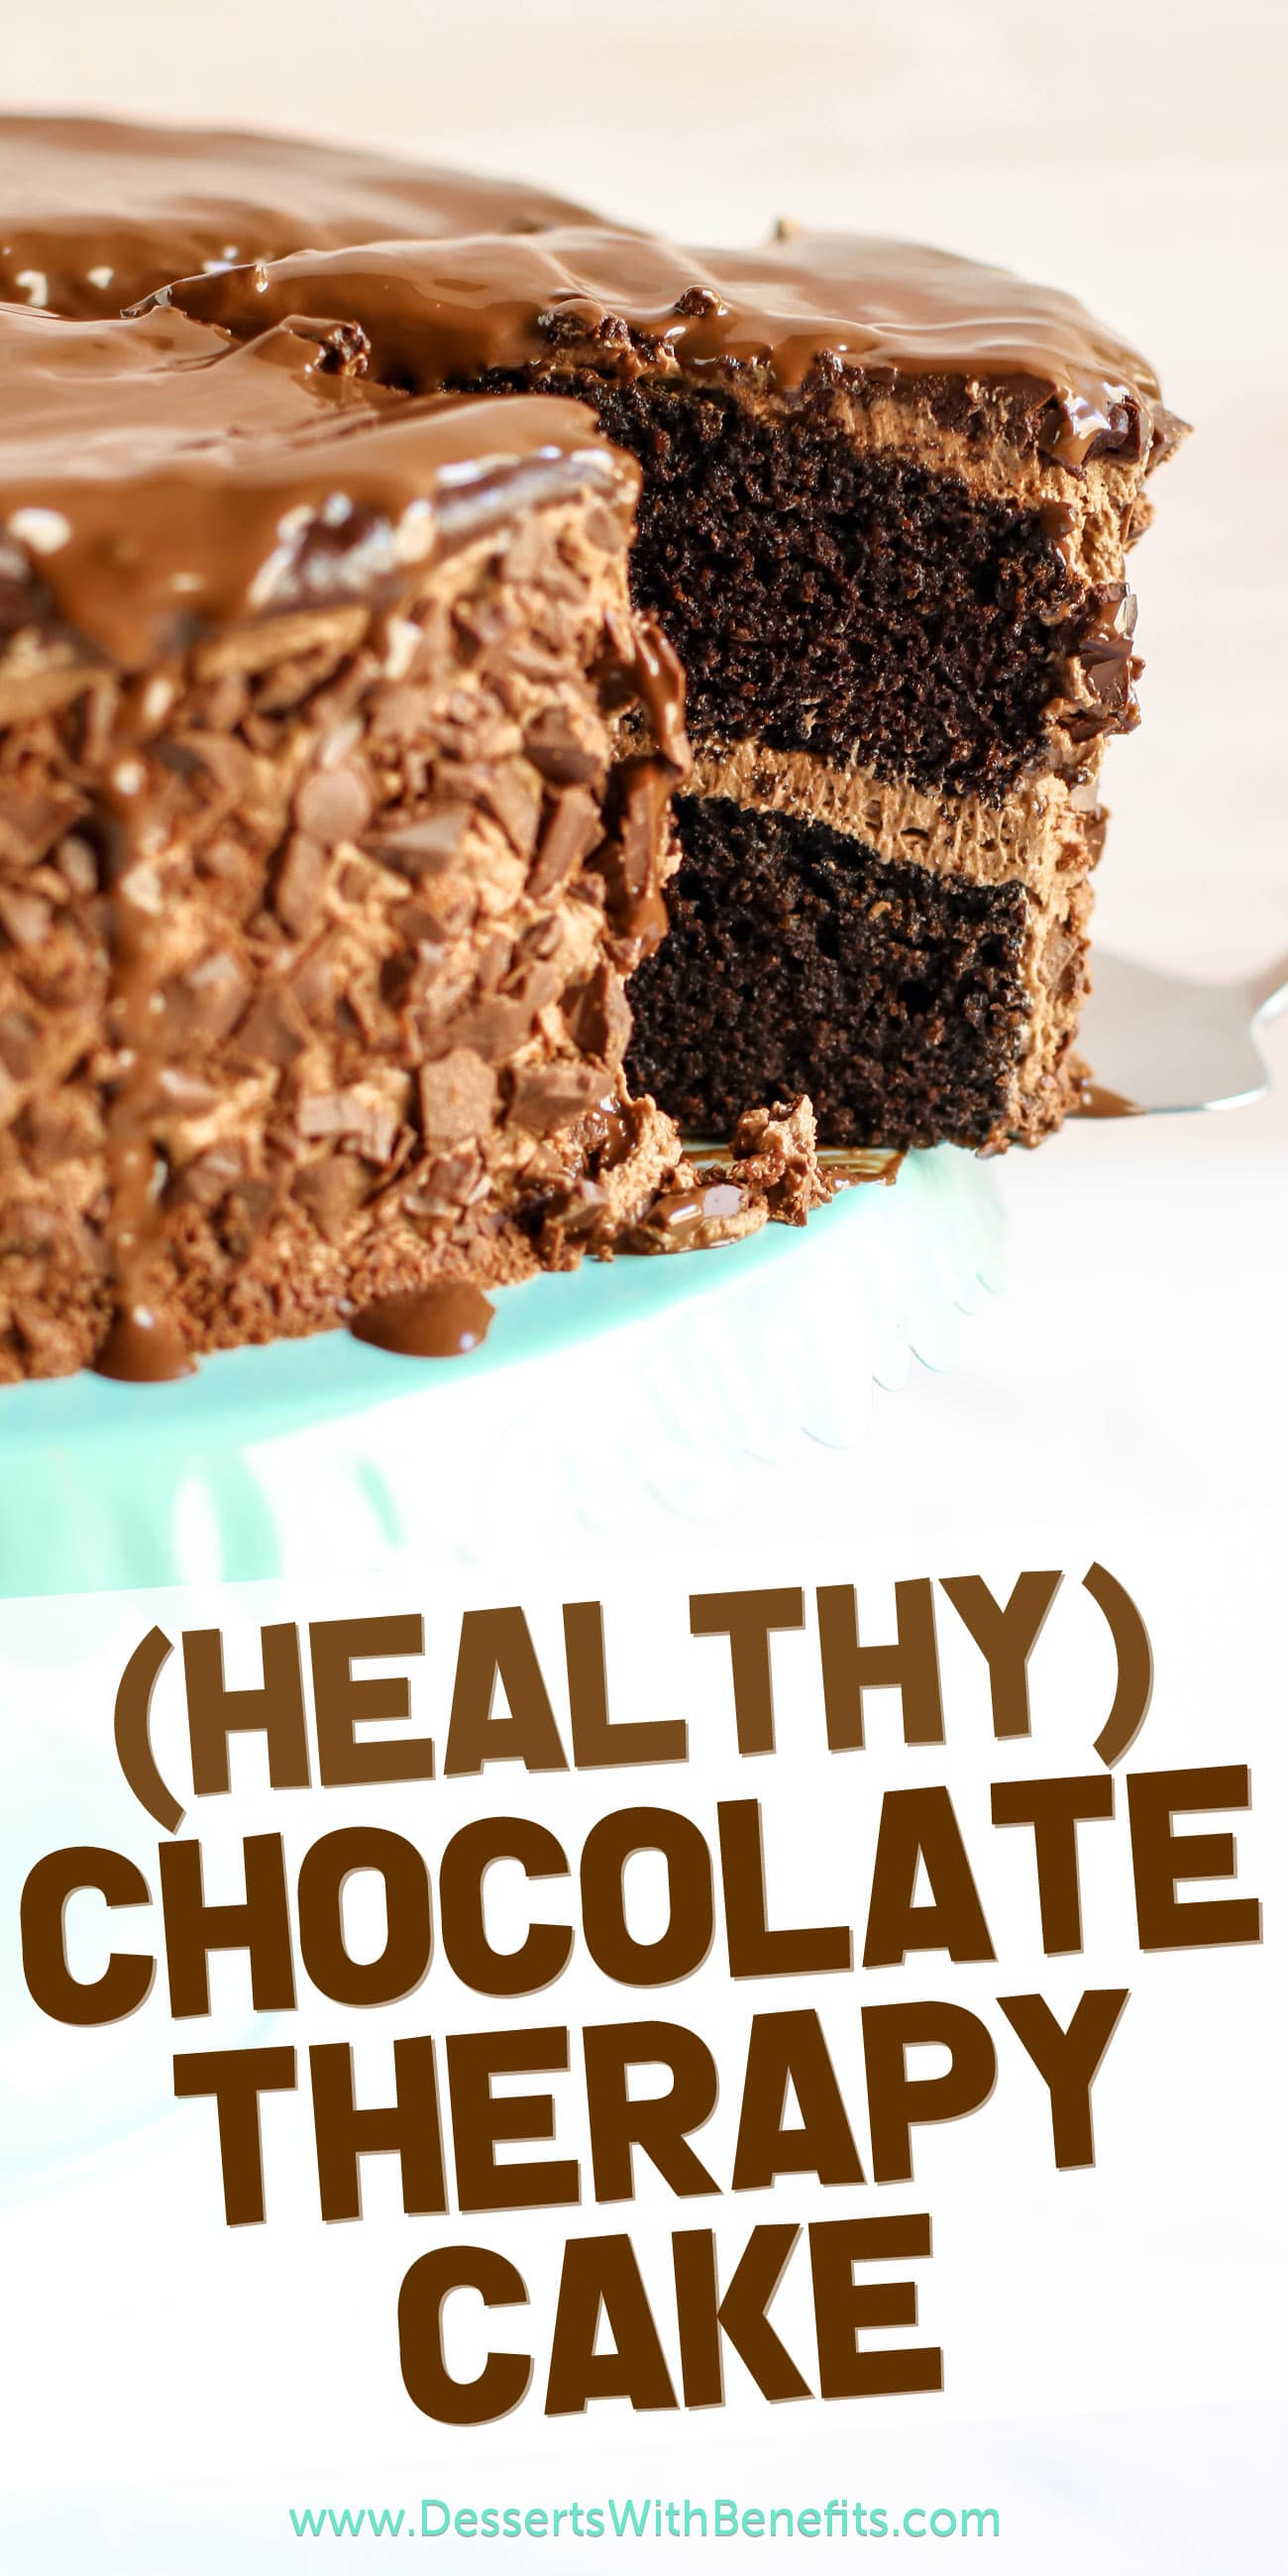 "Chocolate Therapy Cakes are ""therapeutic"" in the sense that they'll immerse you into a deep, food- and sugar-induced coma, but this one is different. This is a HEALTHY Chocolate Therapy Cake! Made with gluten-free and low-carb coconut flour, unsweetened applesauce, and dark chocolate. No sugar, butter, or oil added whatsoever. #glutenfreecake #lowcarbcake #healthychocolatecake #sugarfreefrosting #highprotein #coconutflourcake"